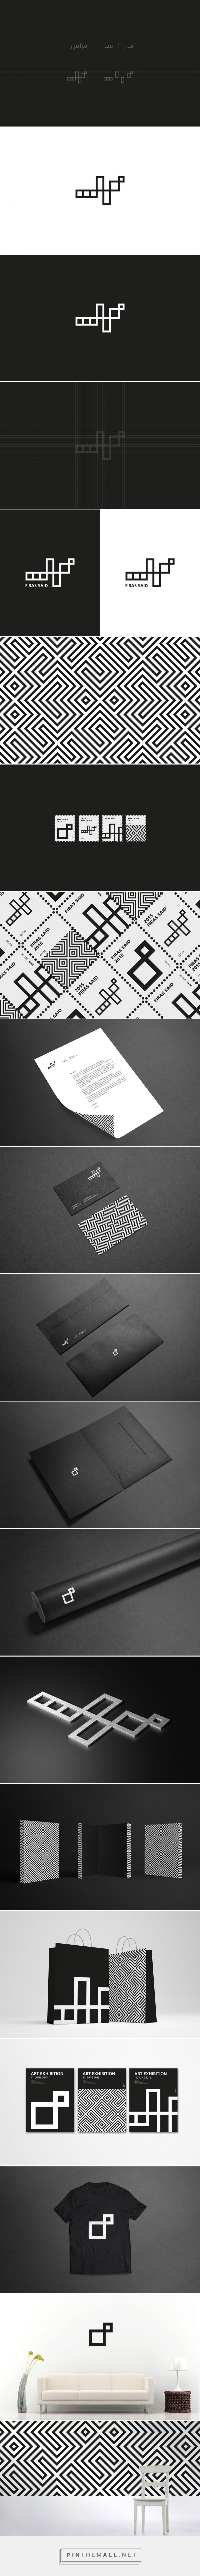 Personal Identity 2015 by Firas Said